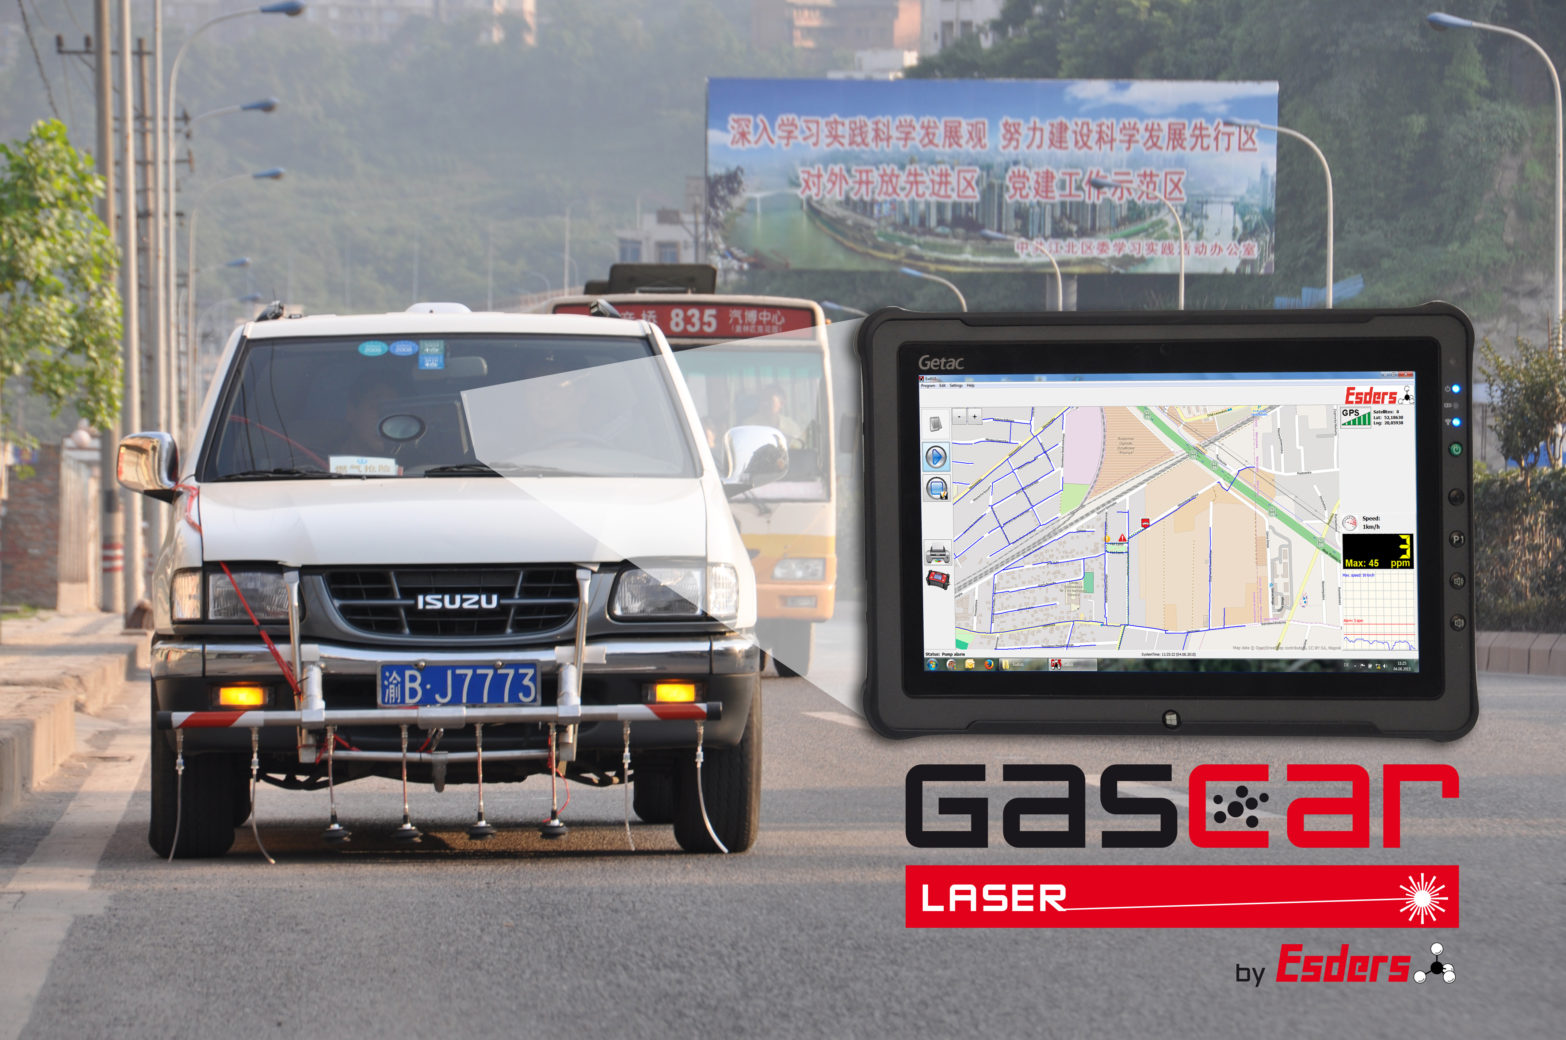 Gas detection vehicles